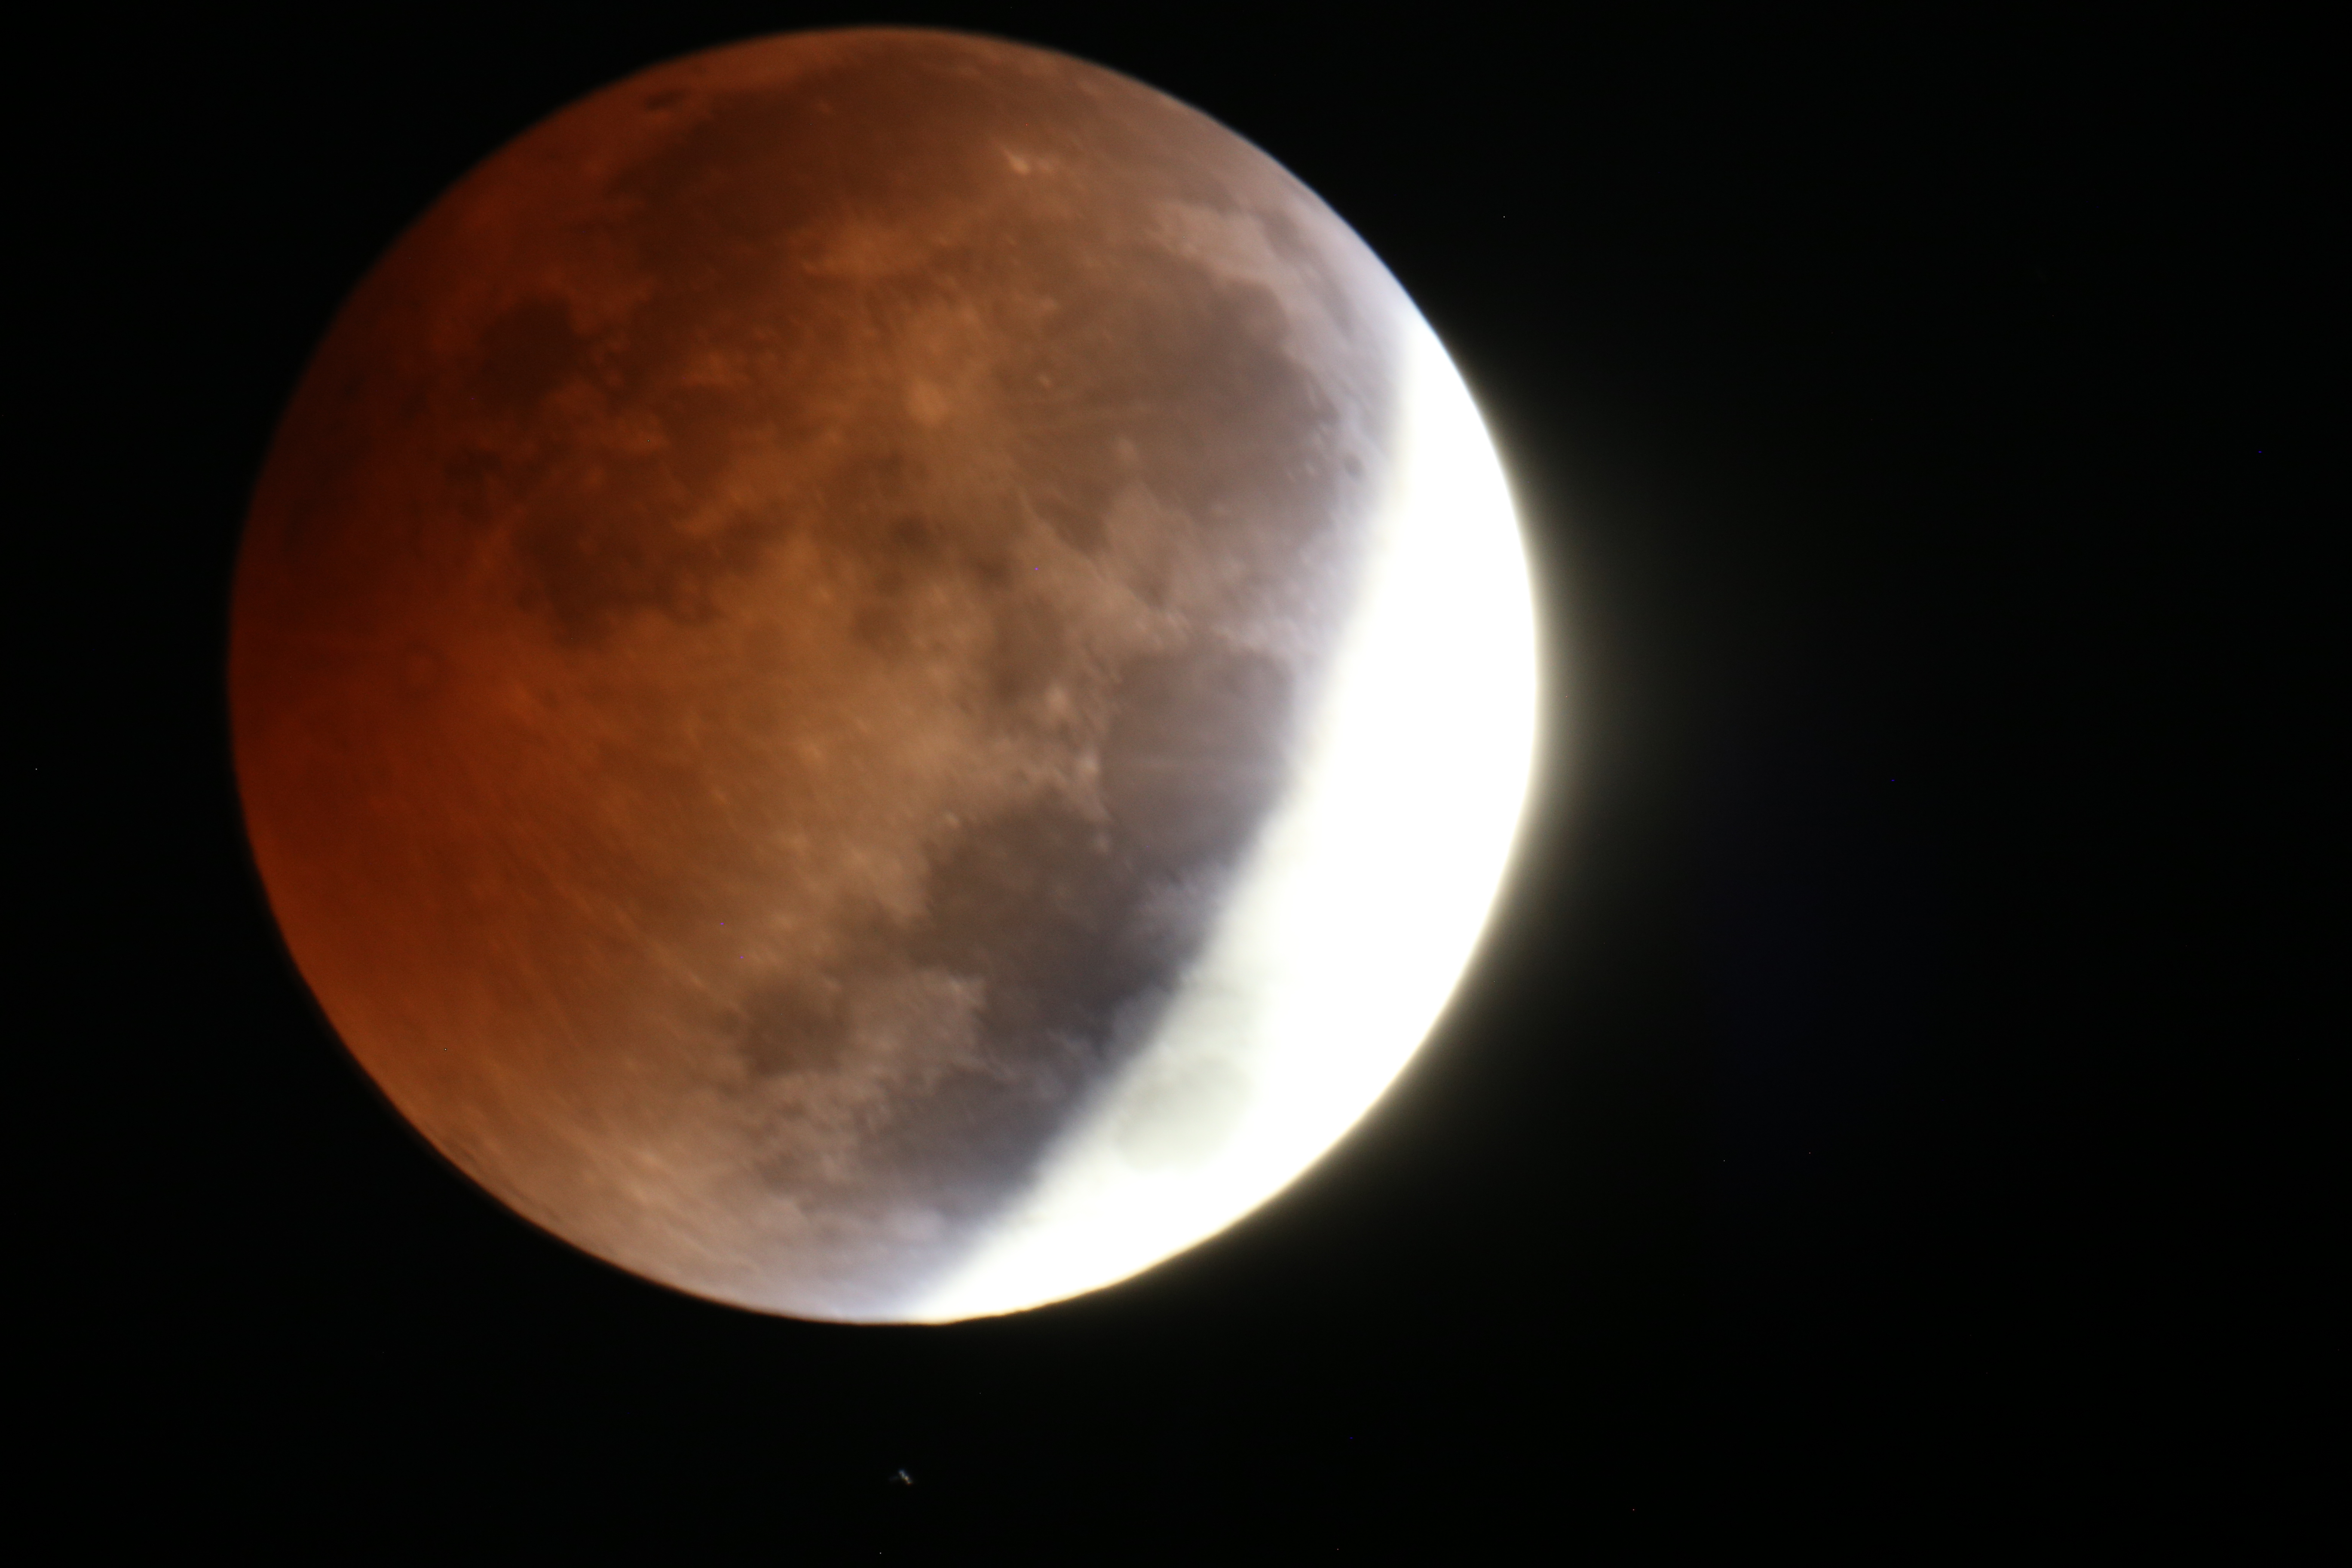 blood-moon-large2-5959a68bc50693c3f22001ef81befdd16765e30e